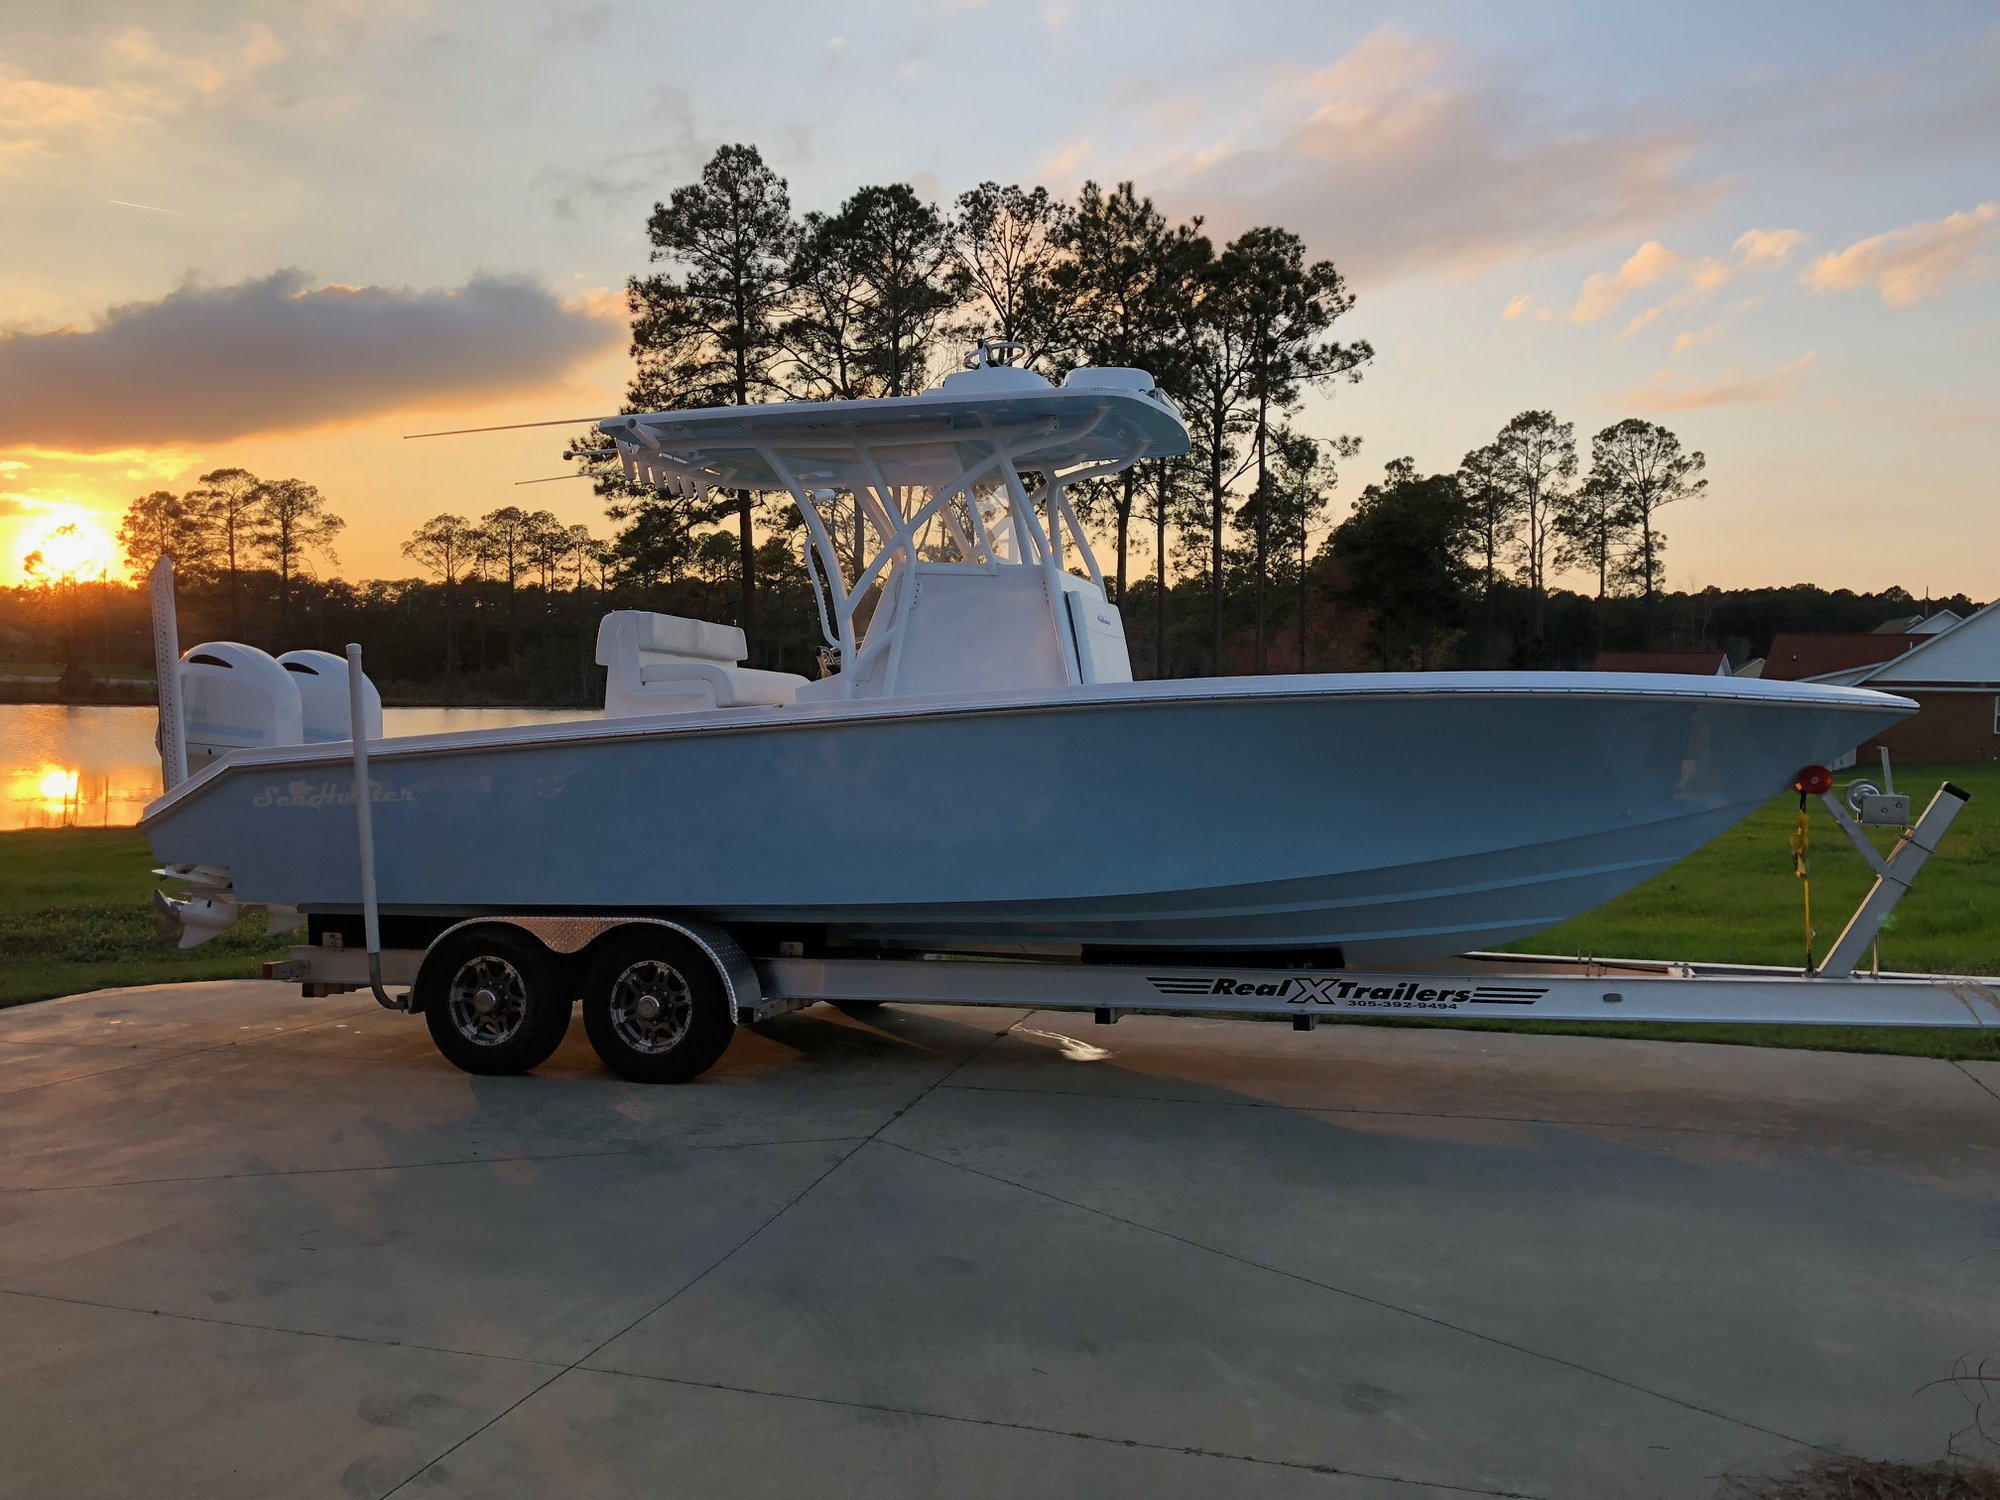 Power Boats For Sale >> 2017 28' Seahunter Floridian - The Hull Truth - Boating ...